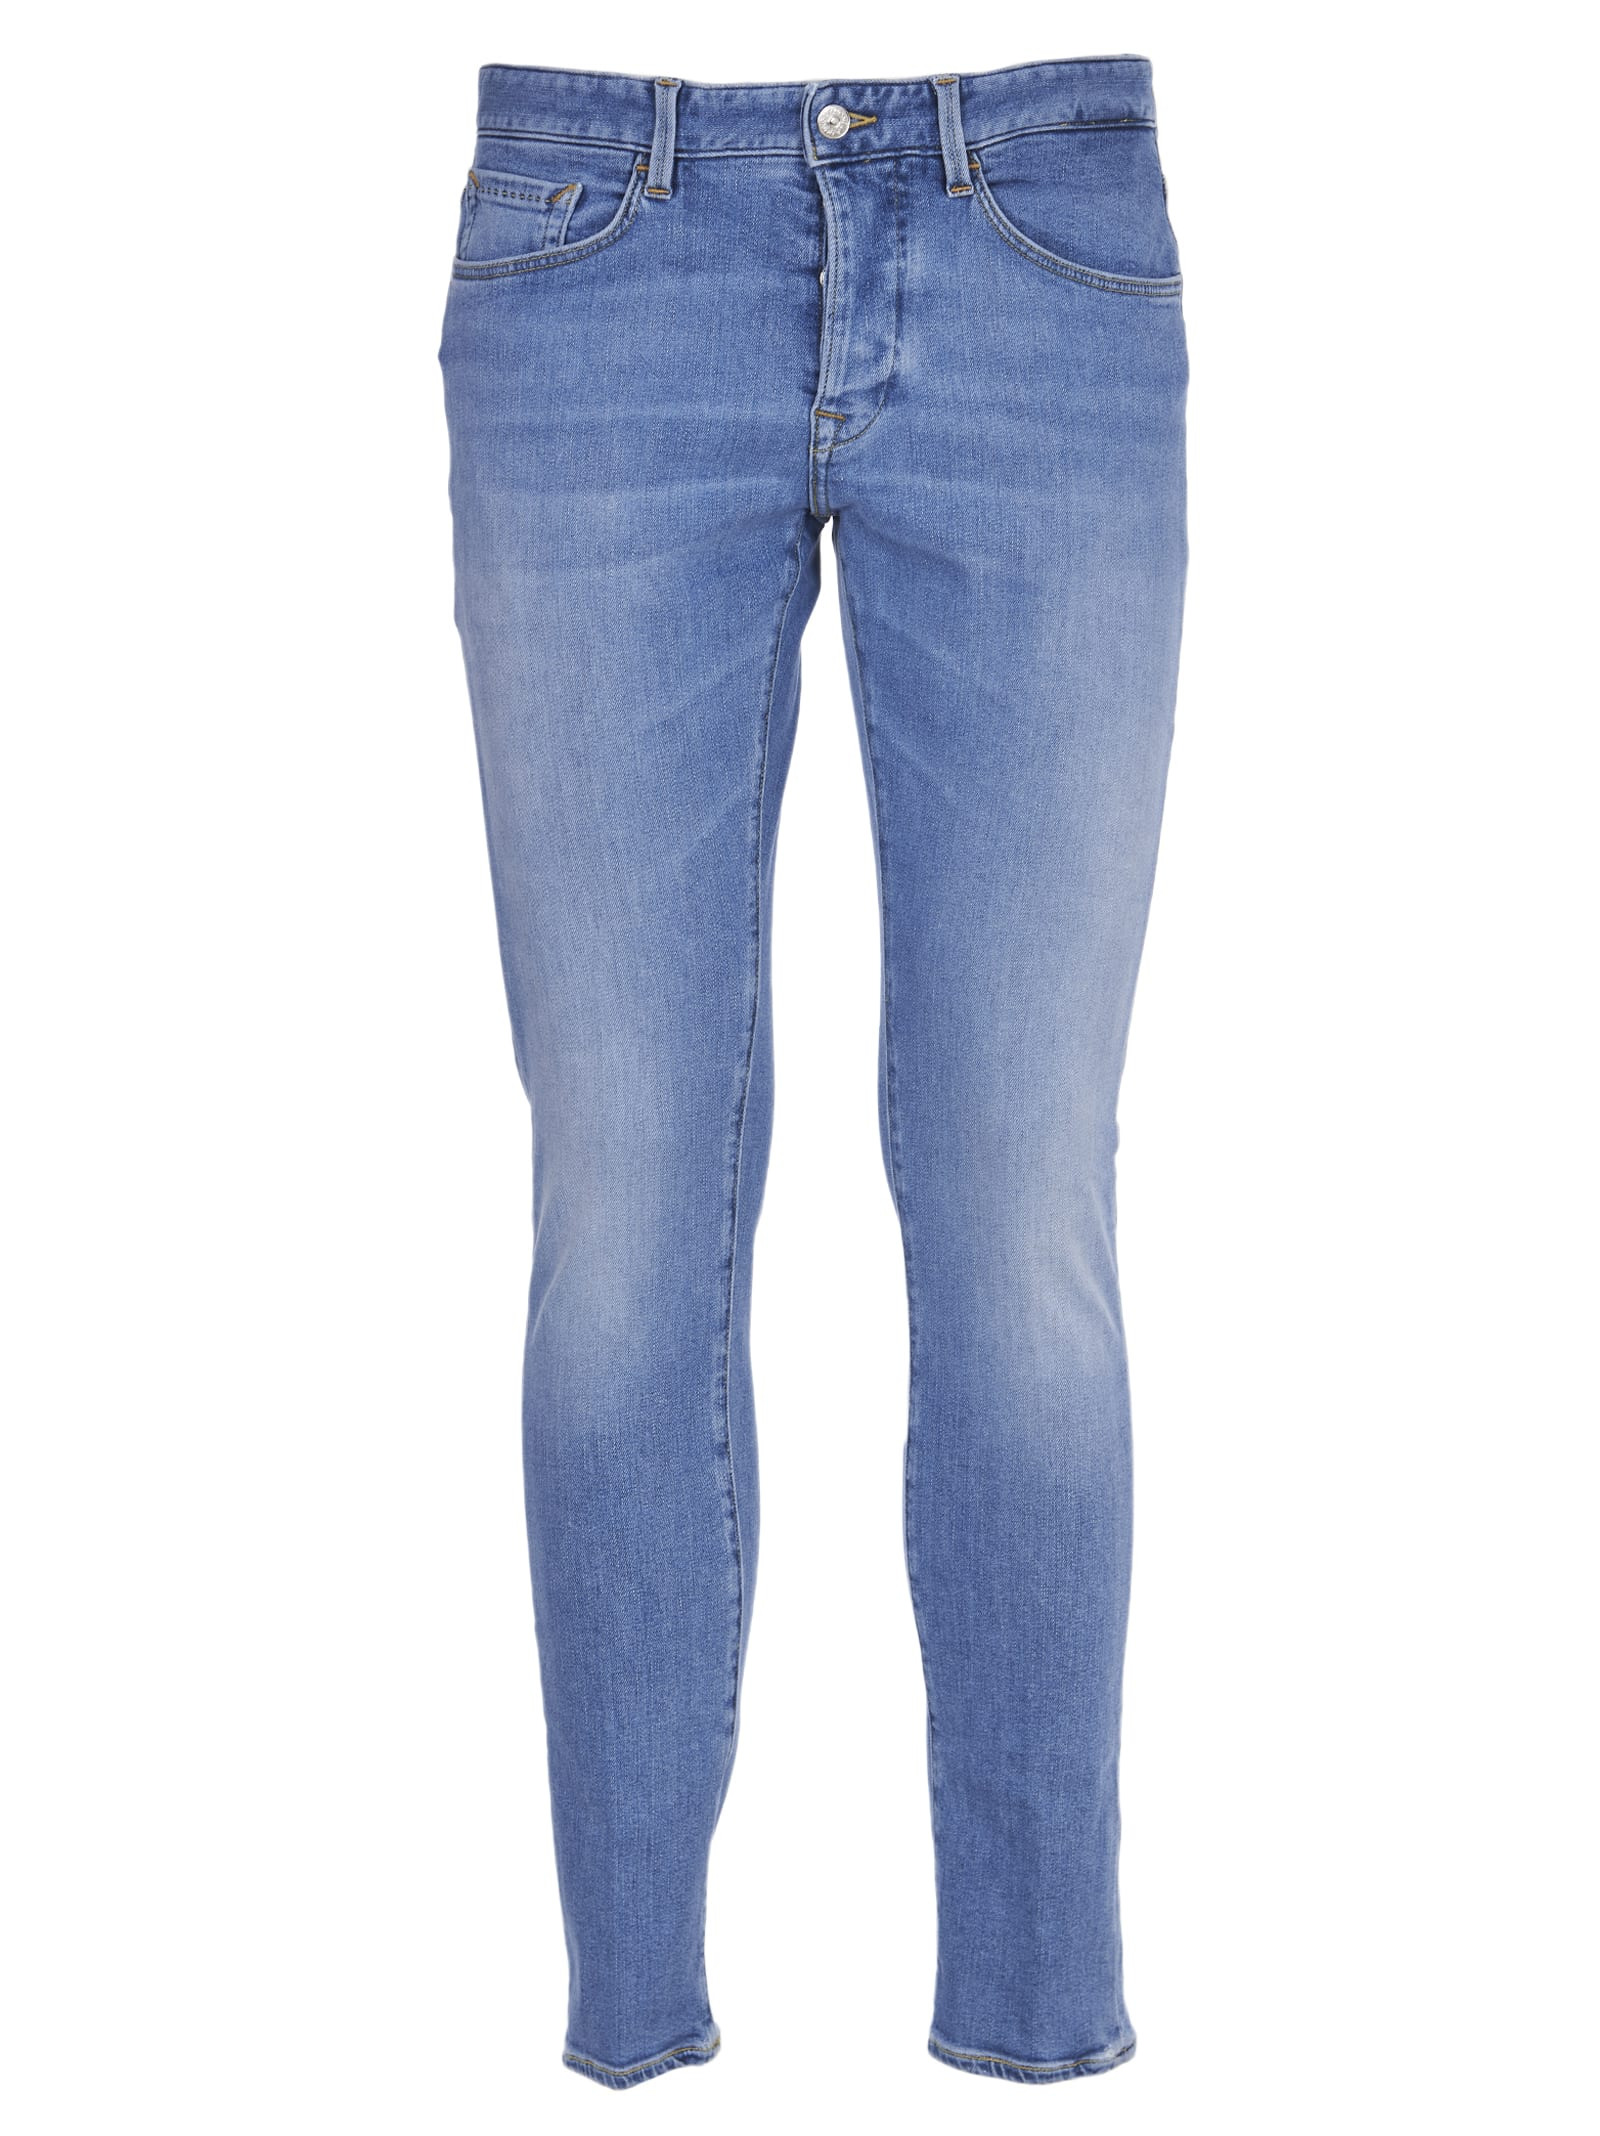 Dondup Limited Edition Light Blue Jeans